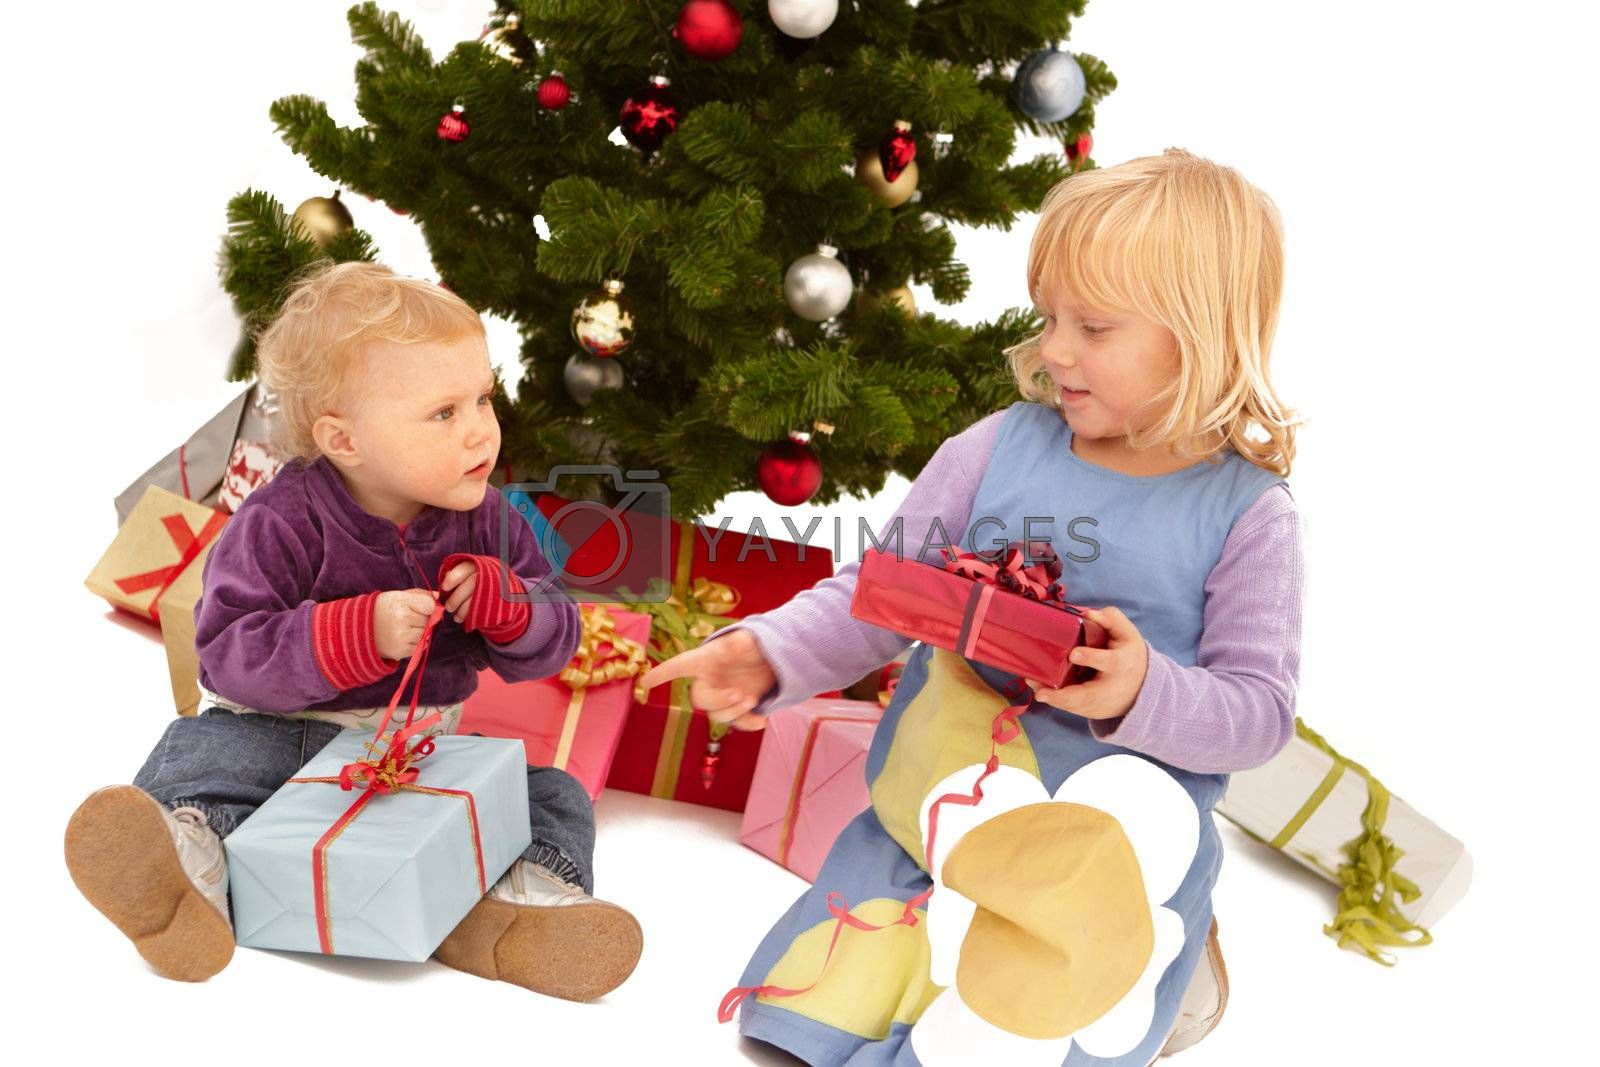 Royalty free image of Christmas - Your present is bigger than mine! by FreedomImage